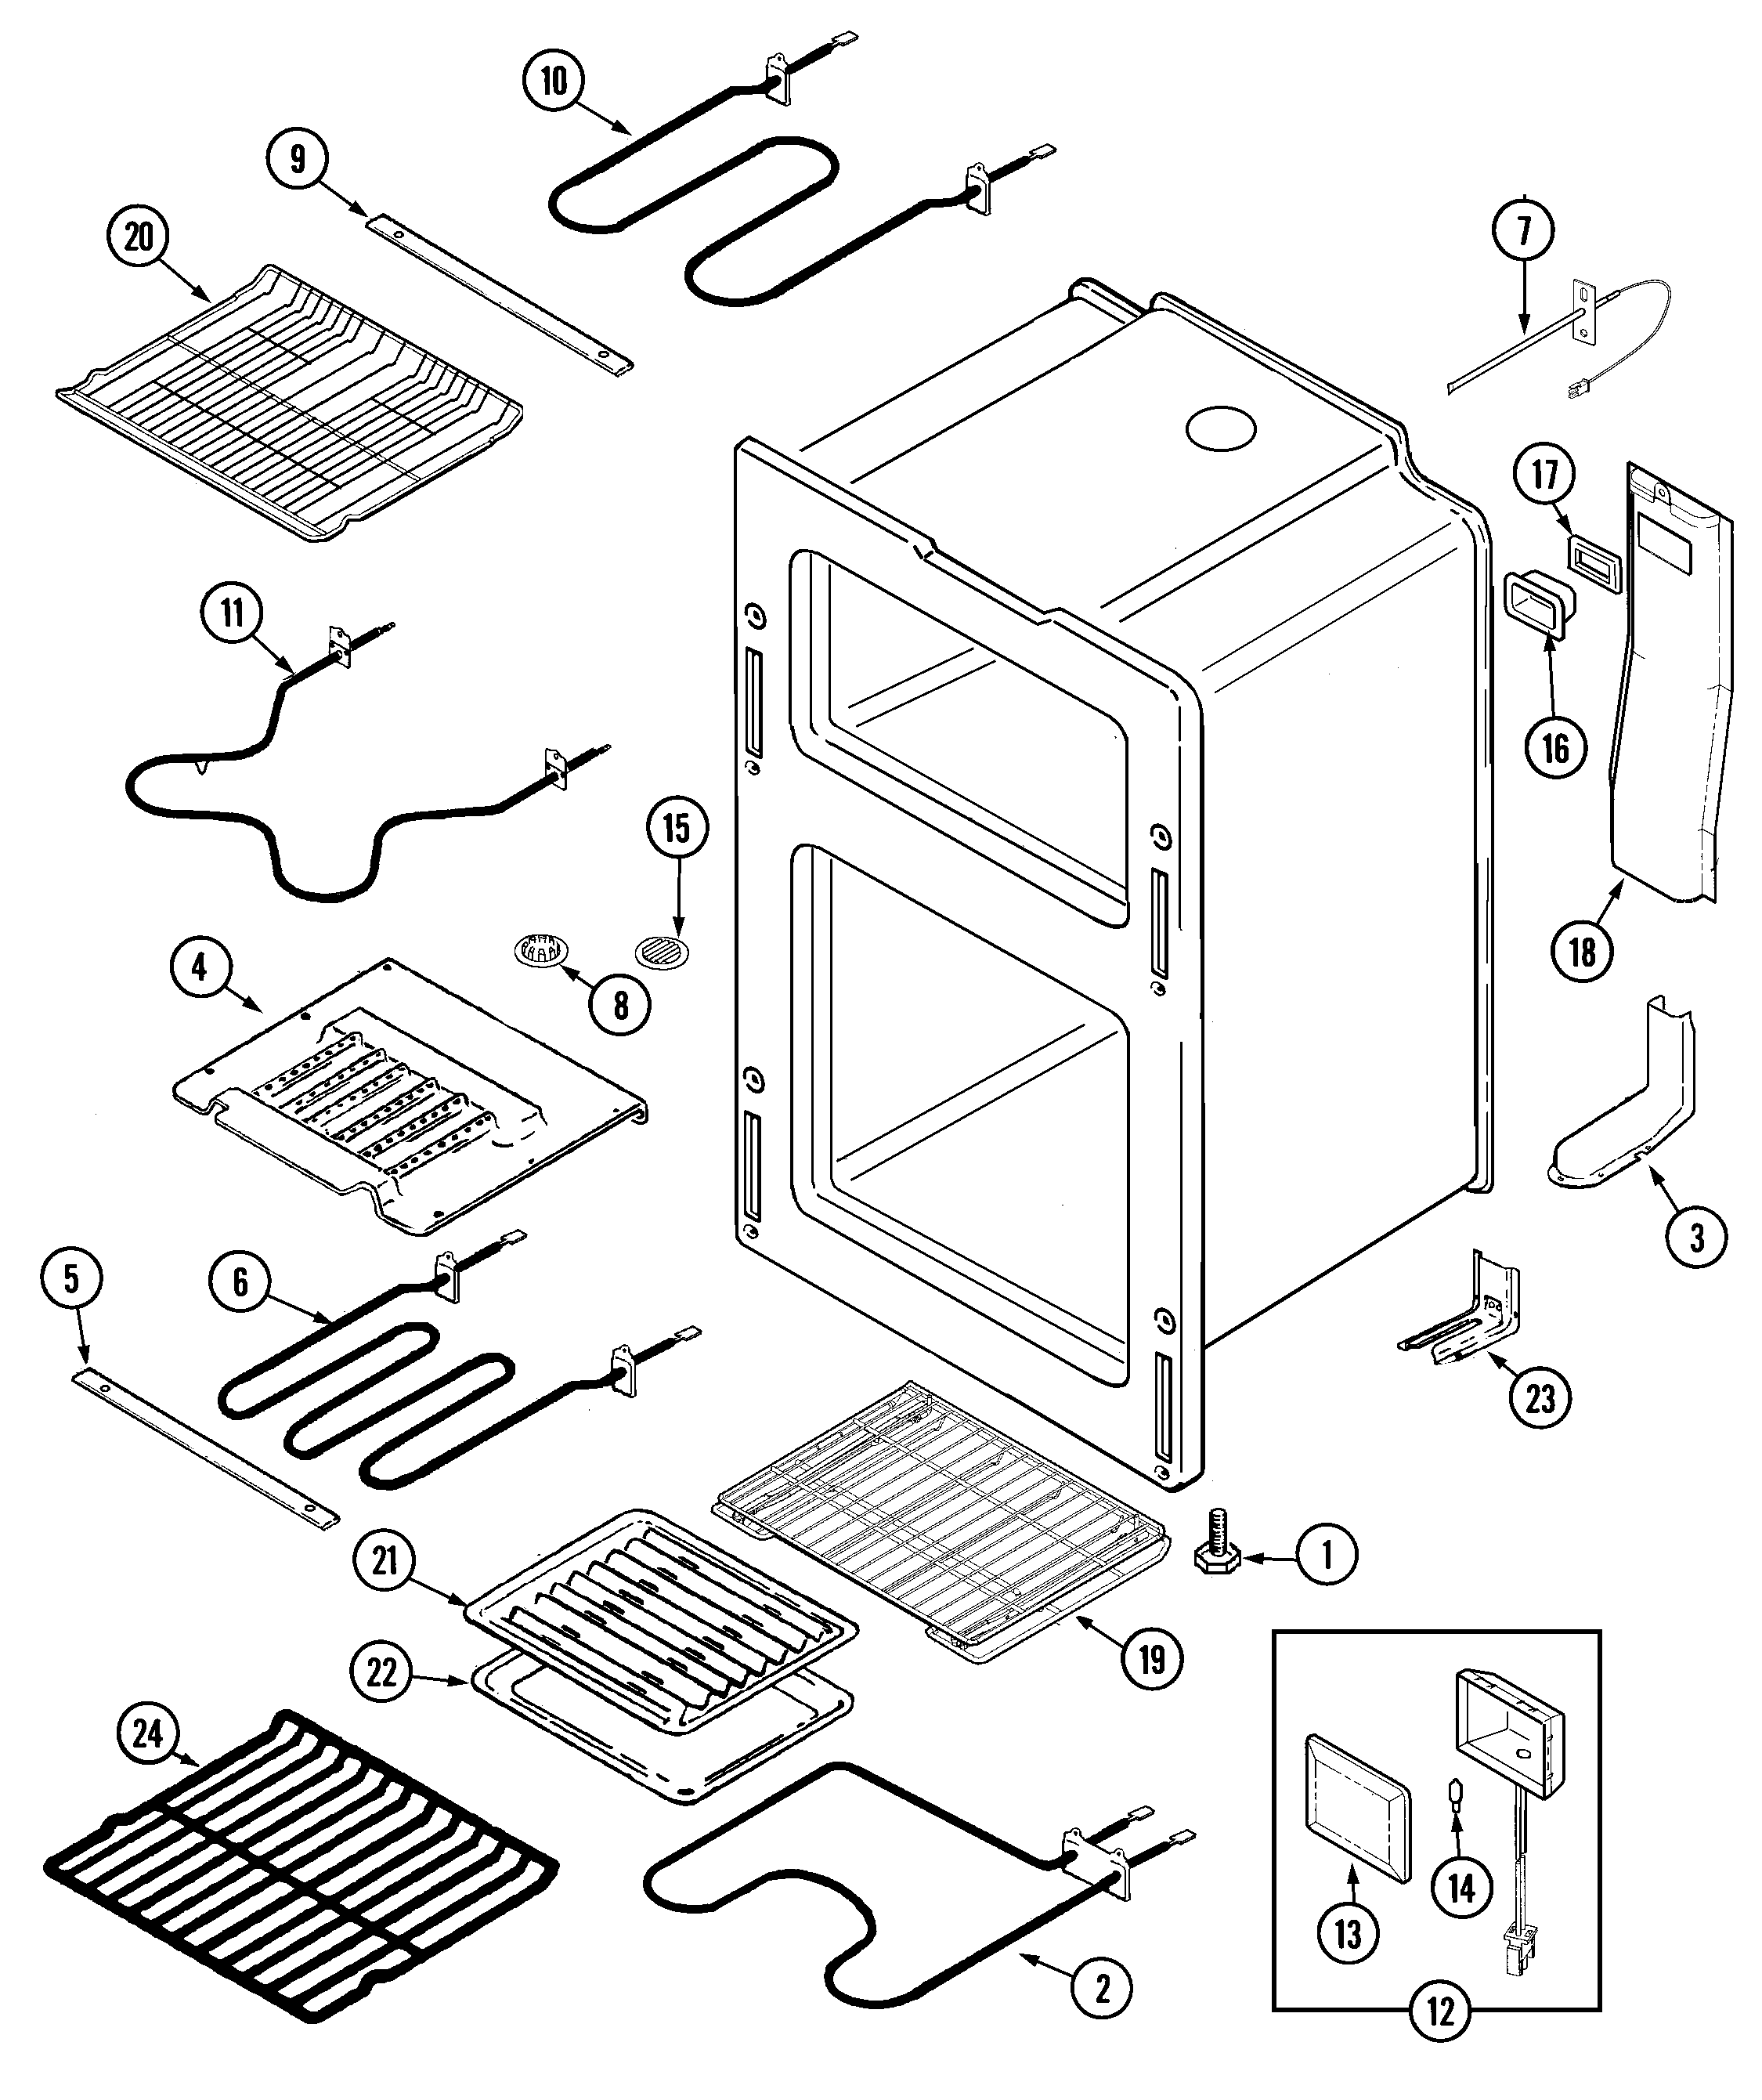 electrical schematic for maytag dishwasher  electrical